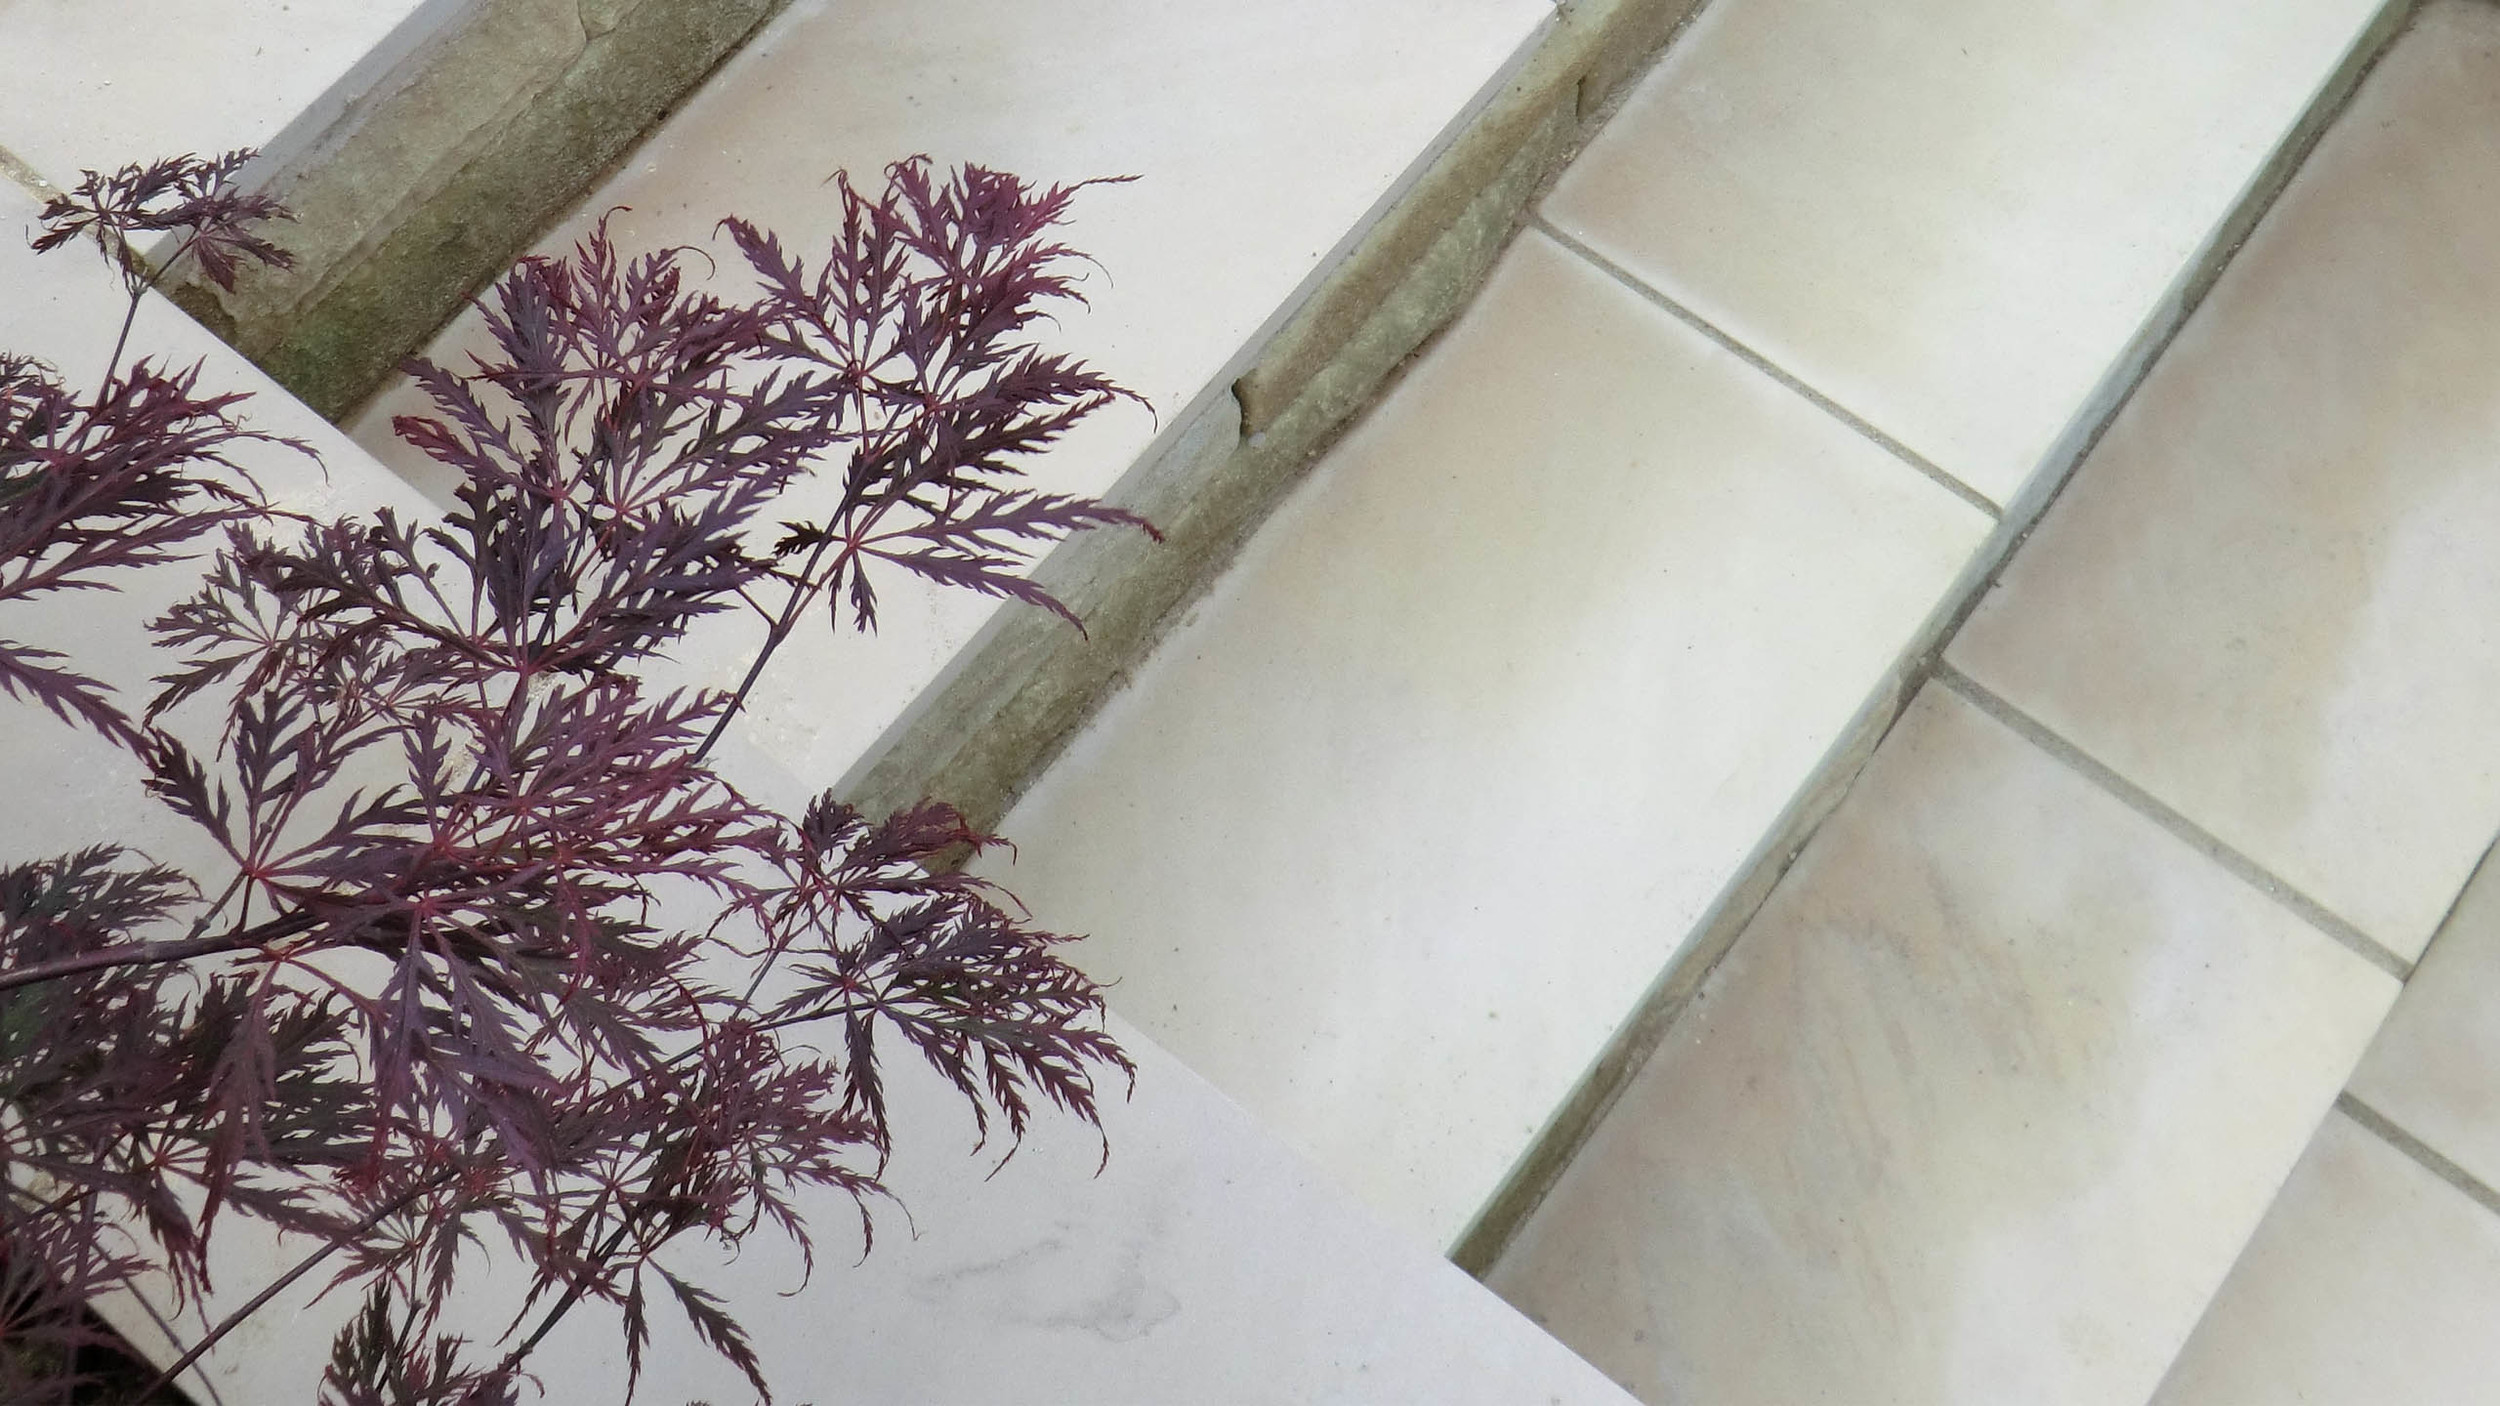 Contemporary Sawn Stone with Acer palmatum 'Dissectum'